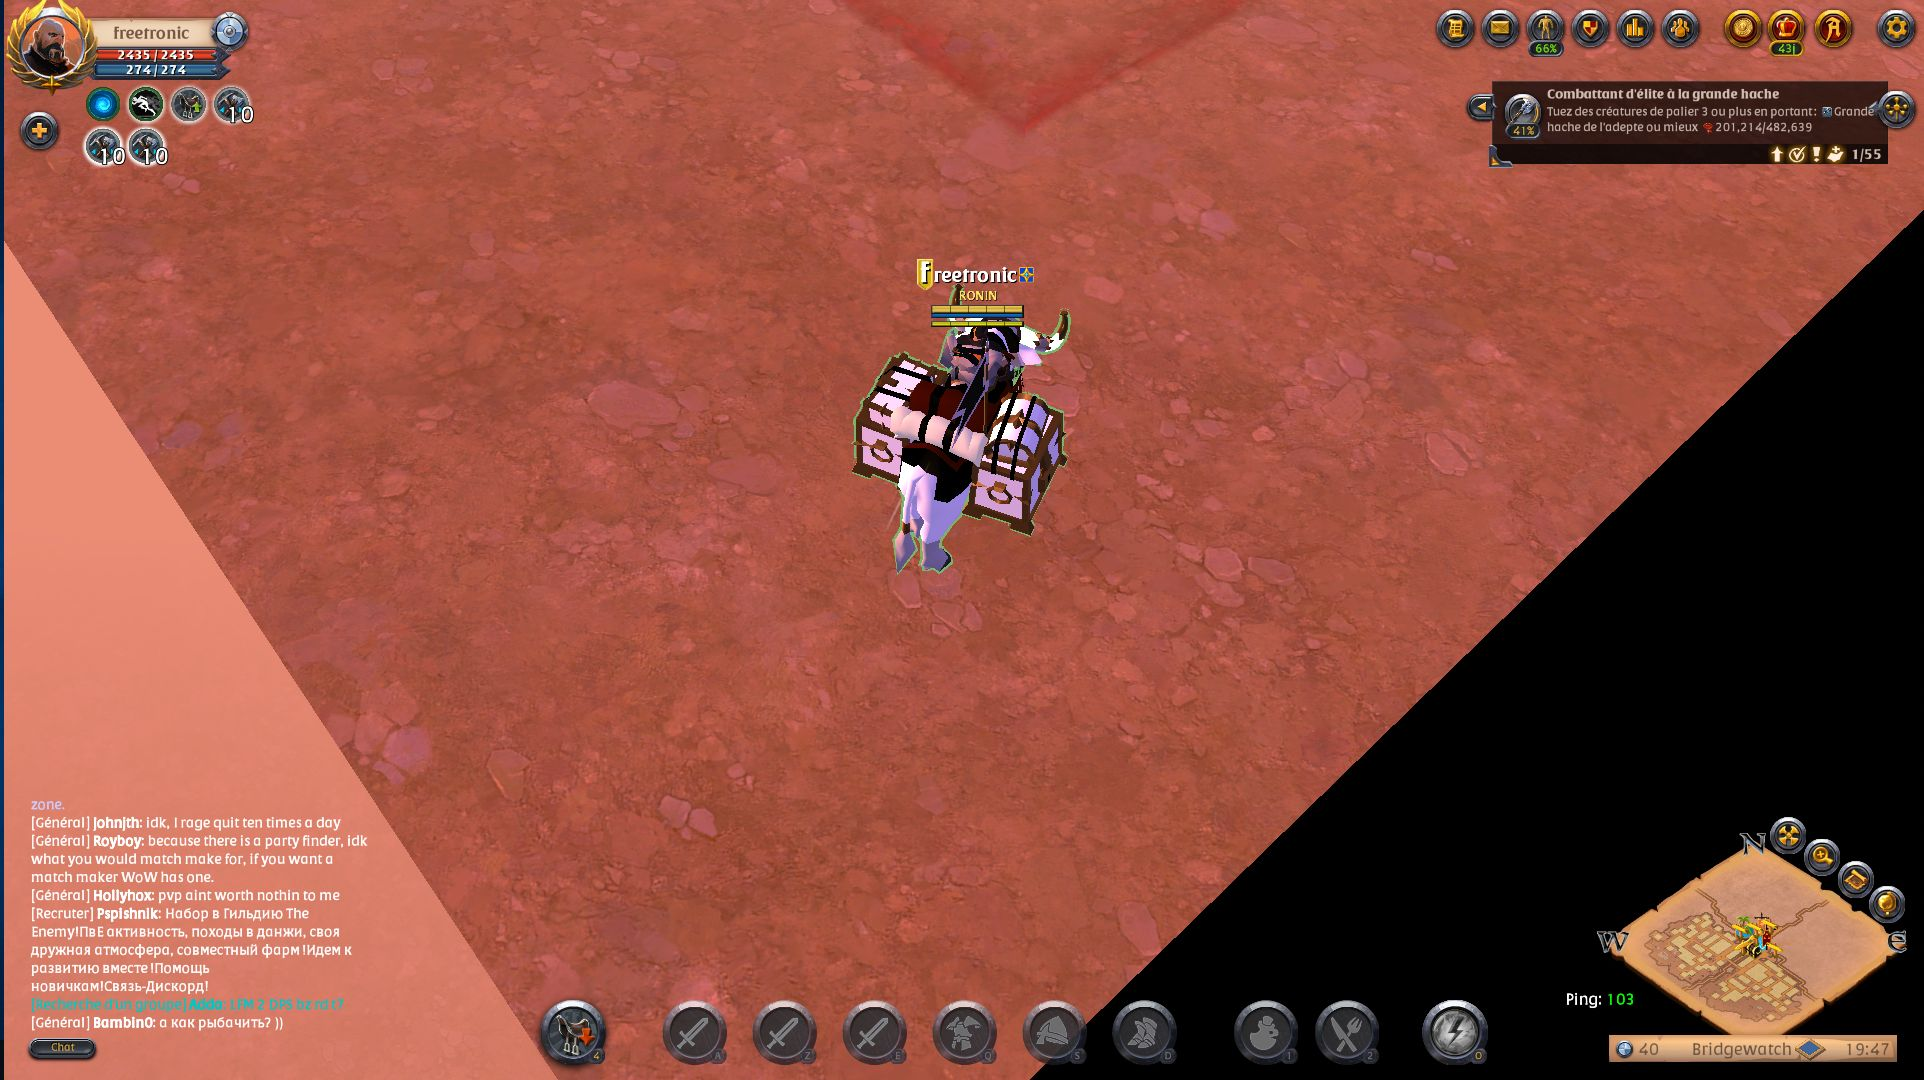 bug bridewatch, impossible to play - Bugs - Albion Online Forum